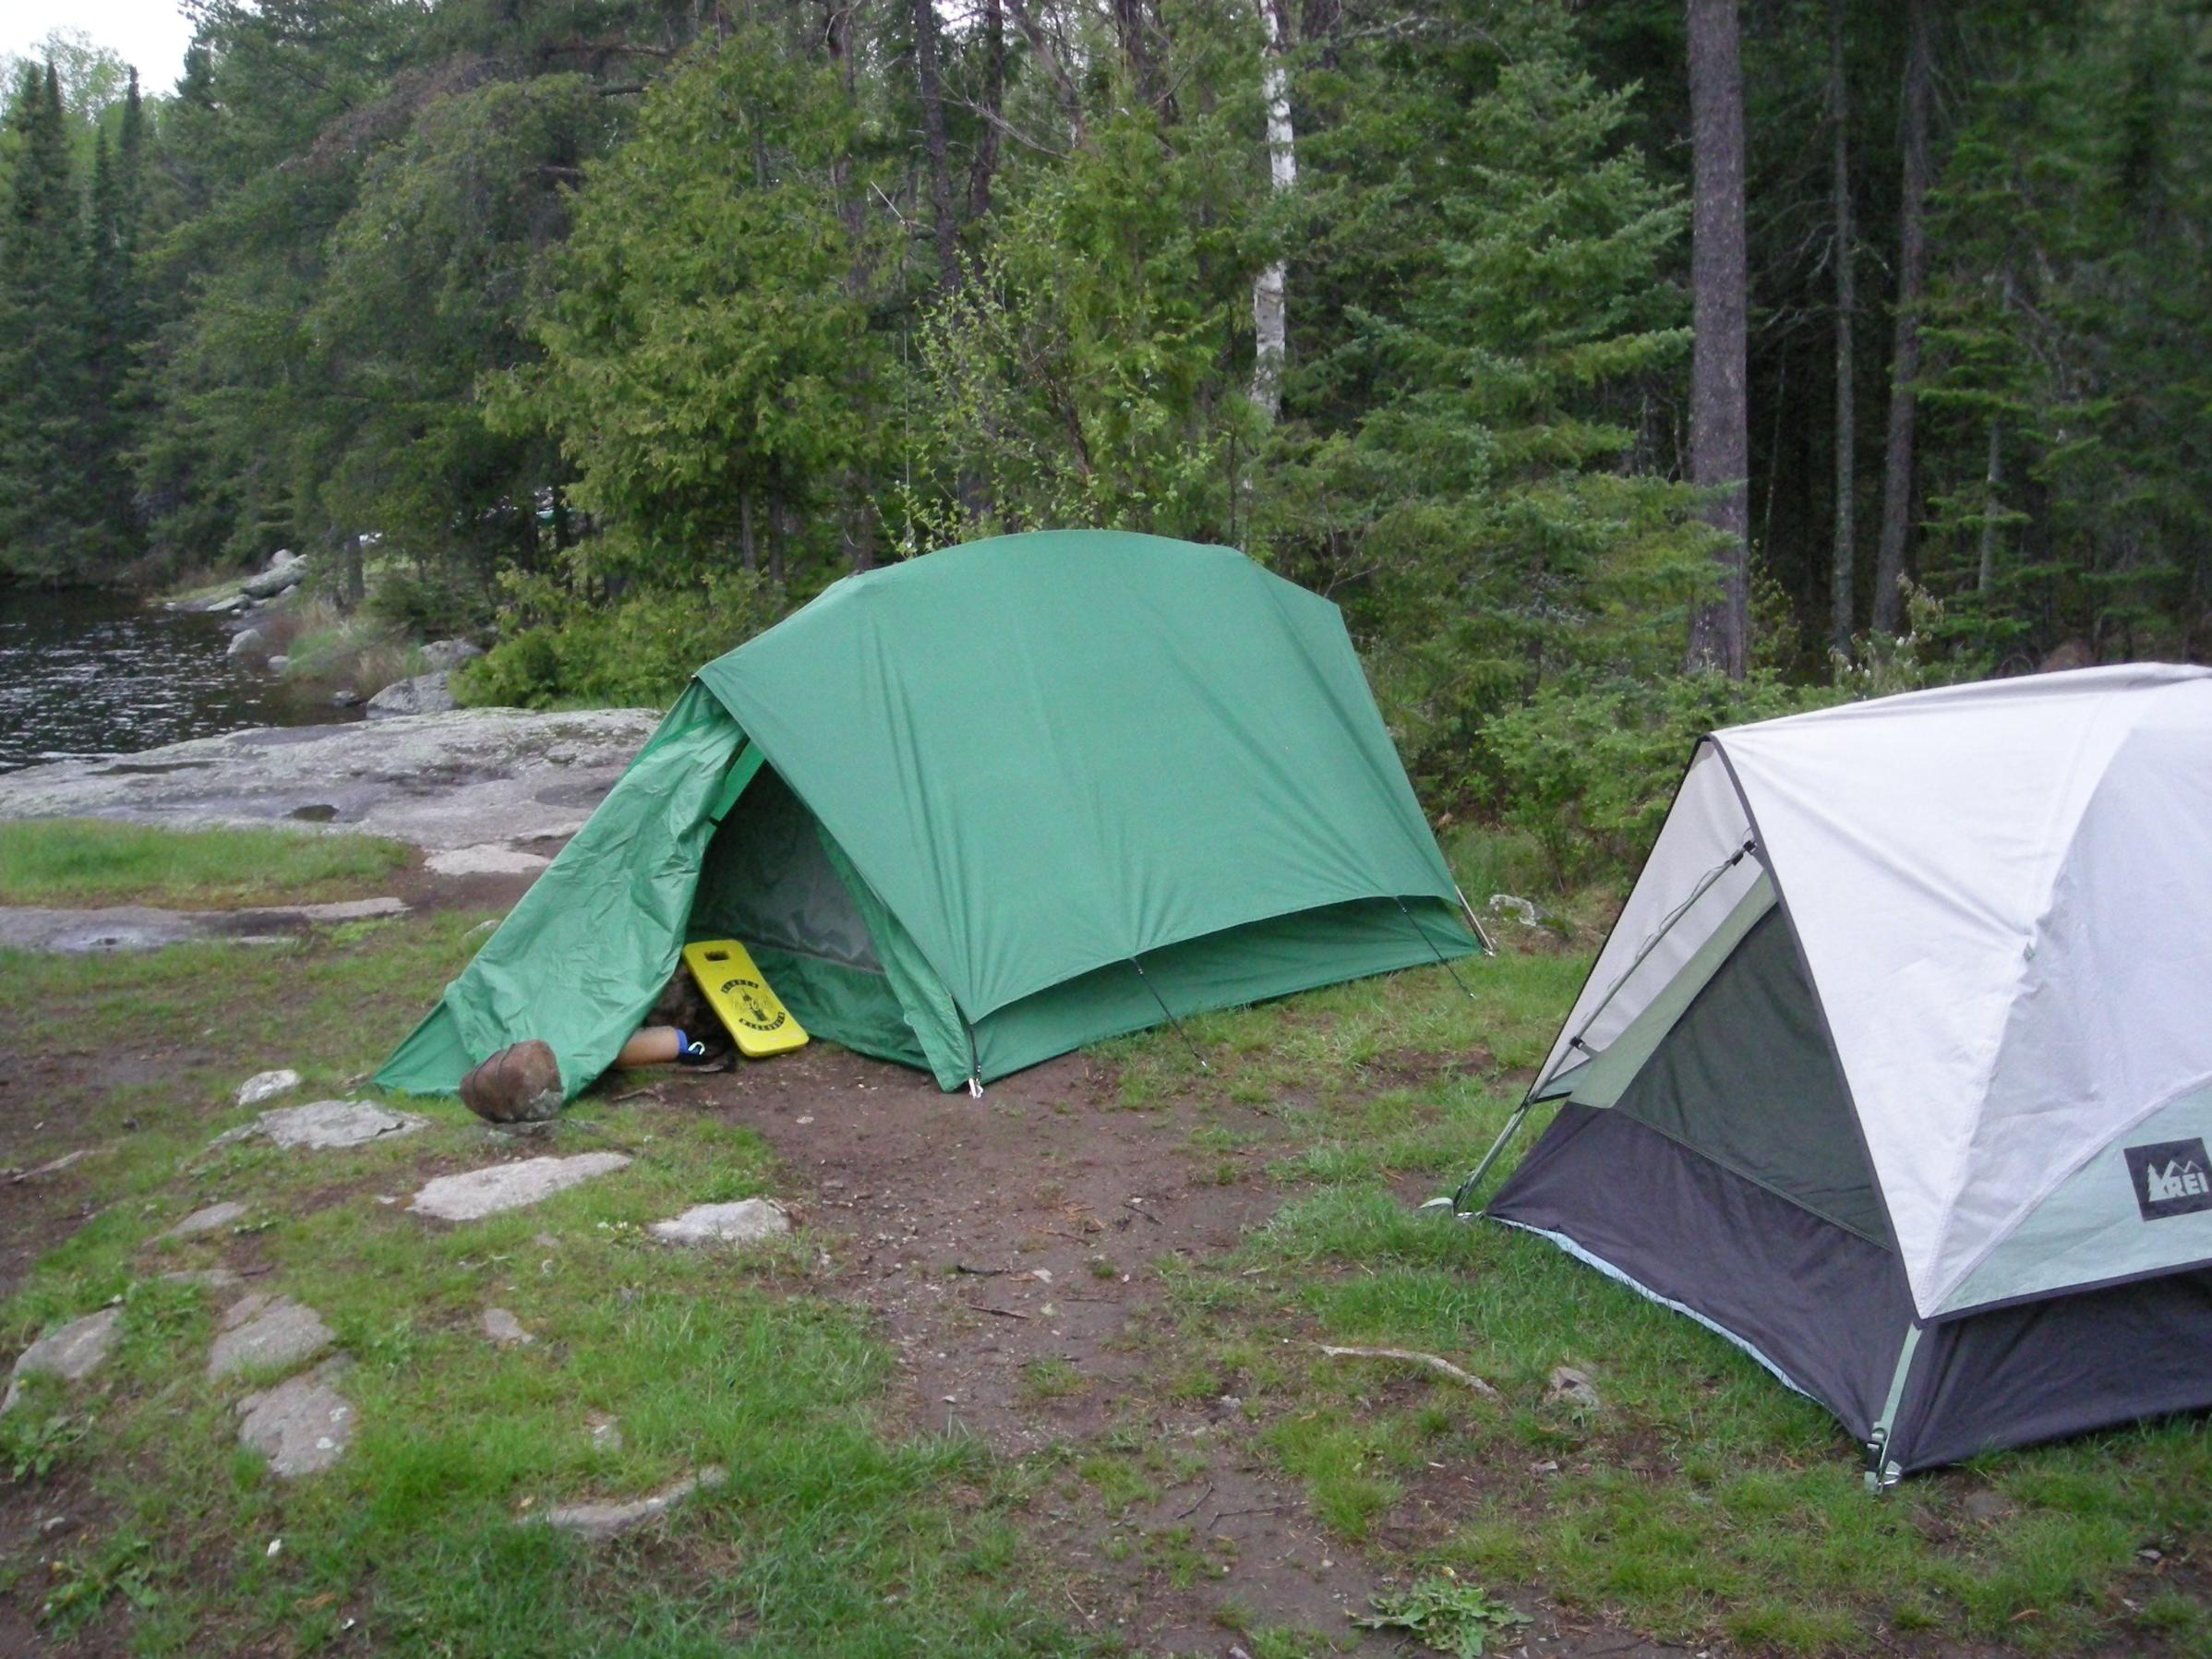 ... using it but Iu0027d like to hear opinions on how you judge time to replace the home away from home. I do like itu0027s footprint size durability ... & BWCA Tent longevity Boundary Waters Gear Forum